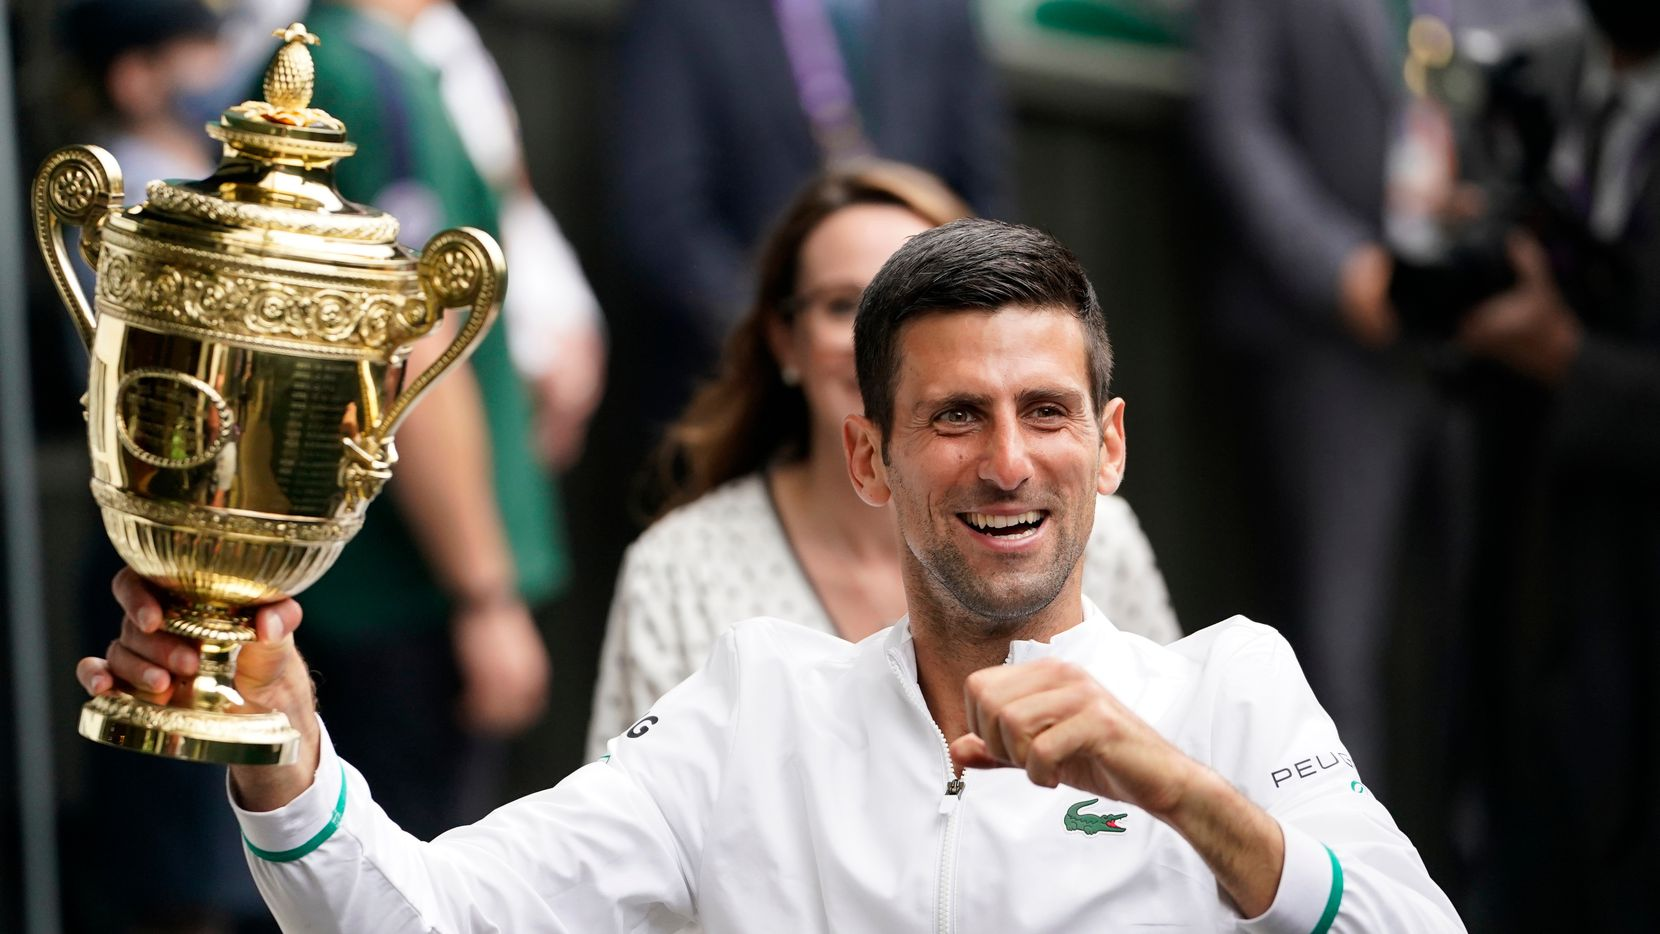 Serbia's Novak Djokovic holds the winner's trophy after his victory over Italy's Matteo Berrettini during the men's singles final match on day thirteen of the Wimbledon Tennis Championships in London, Sunday, July 11, 2021. (AP Photo/Alberto Pezzali)